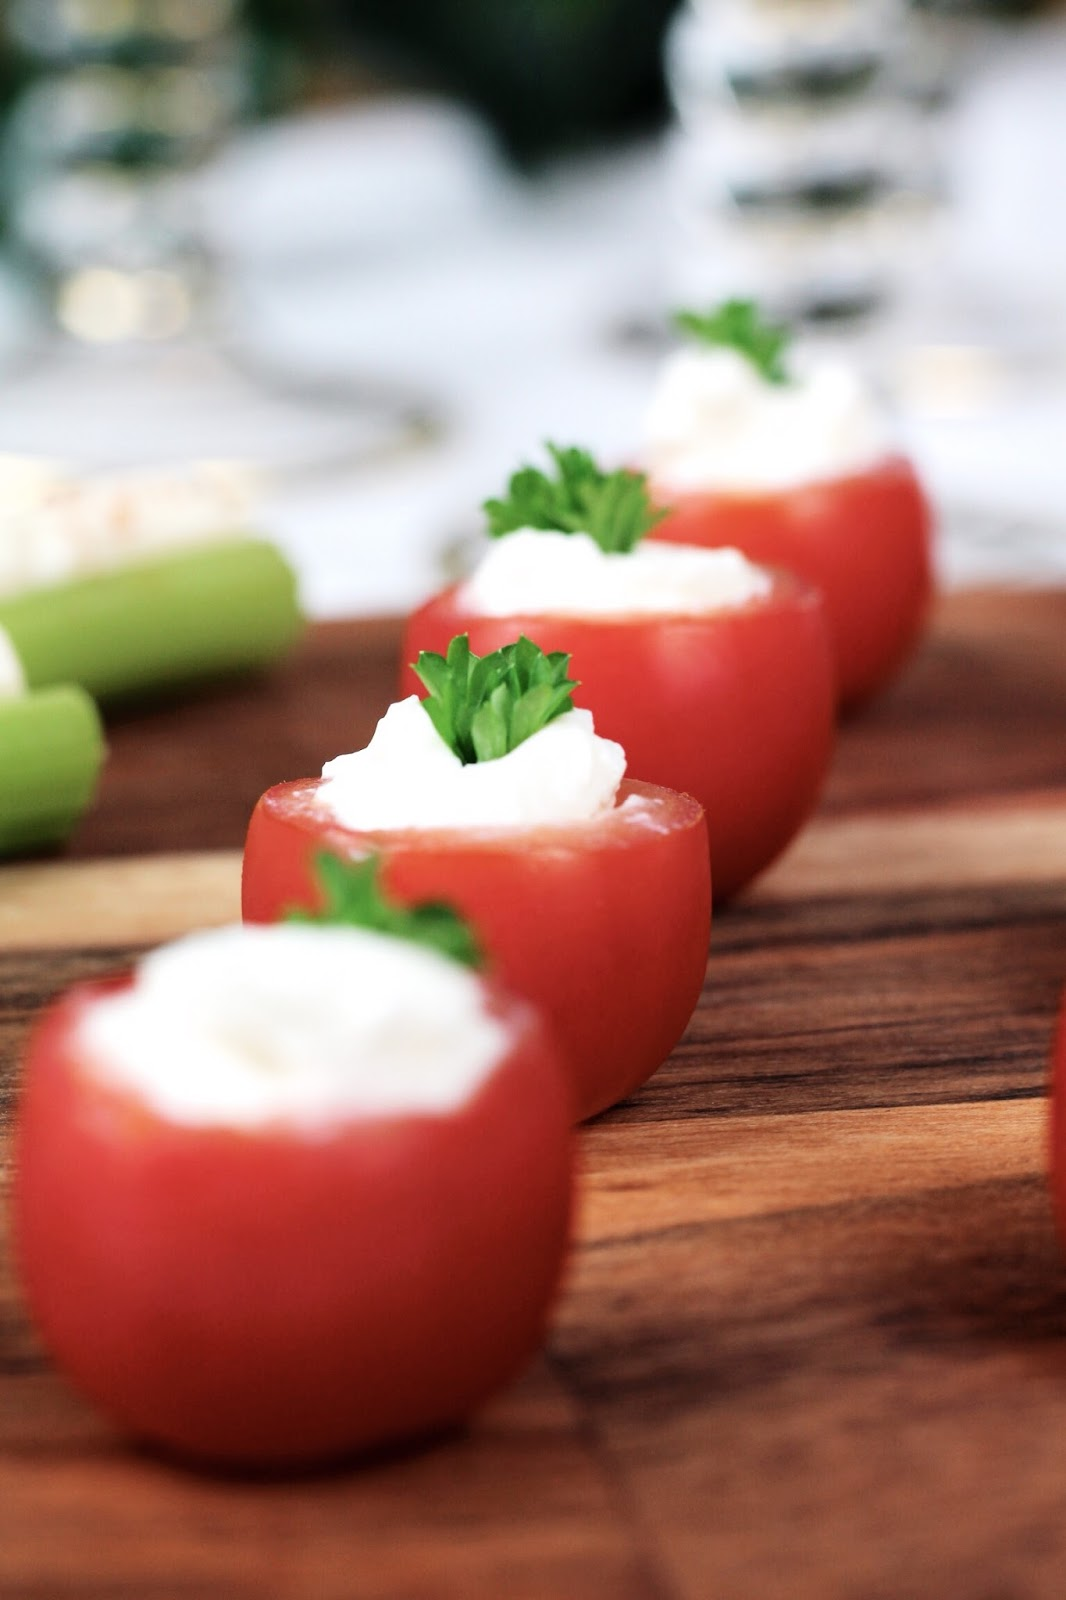 Quick and luxurious looking party appetizers